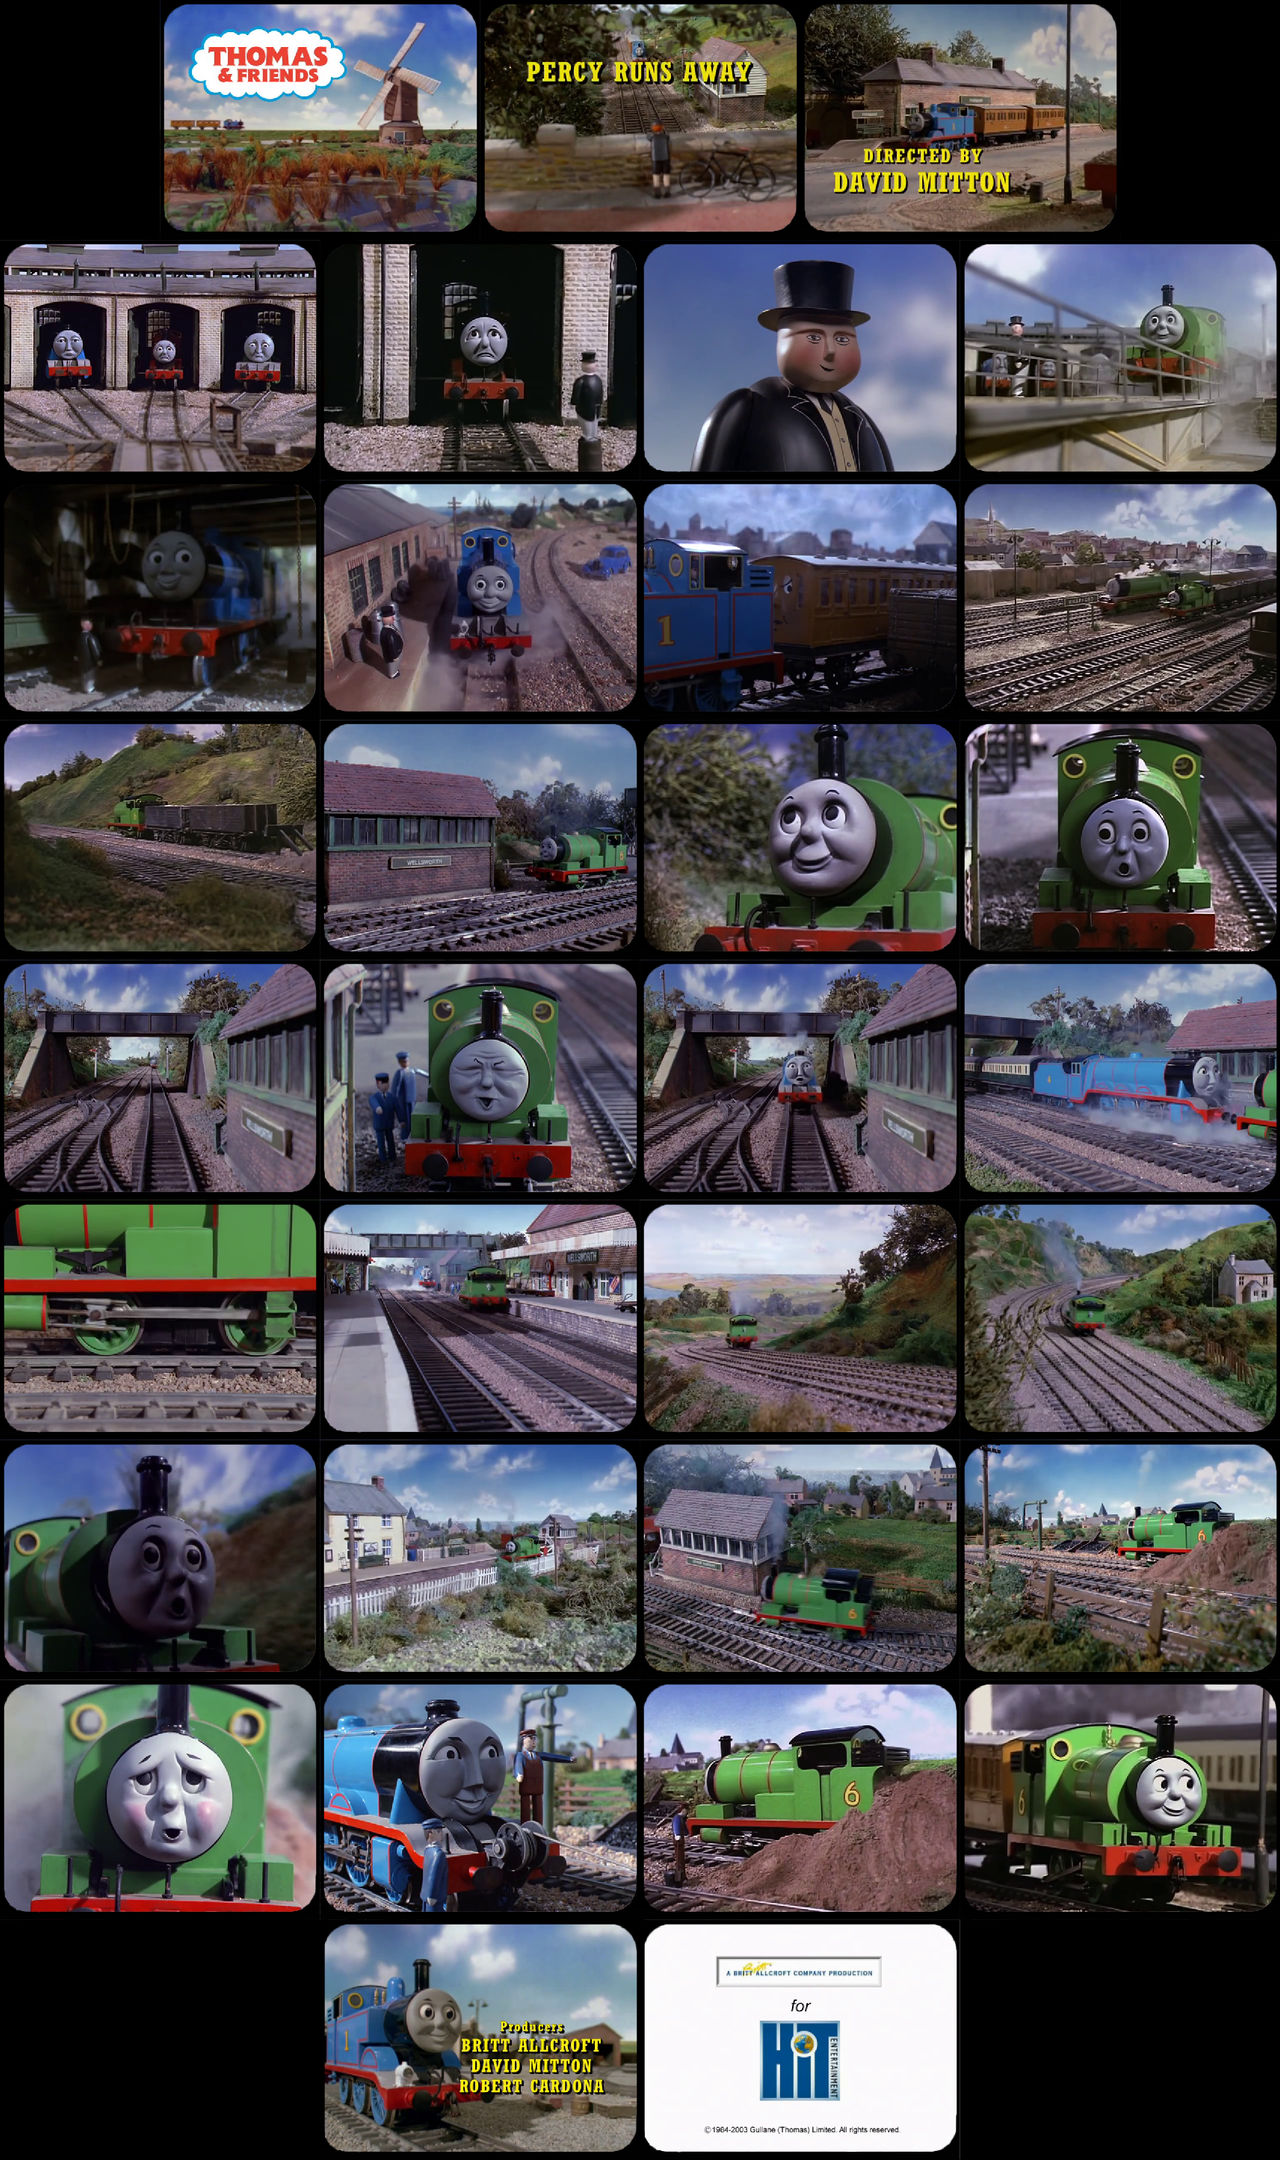 Thomas and Friends Episode 17 Tele-Snaps